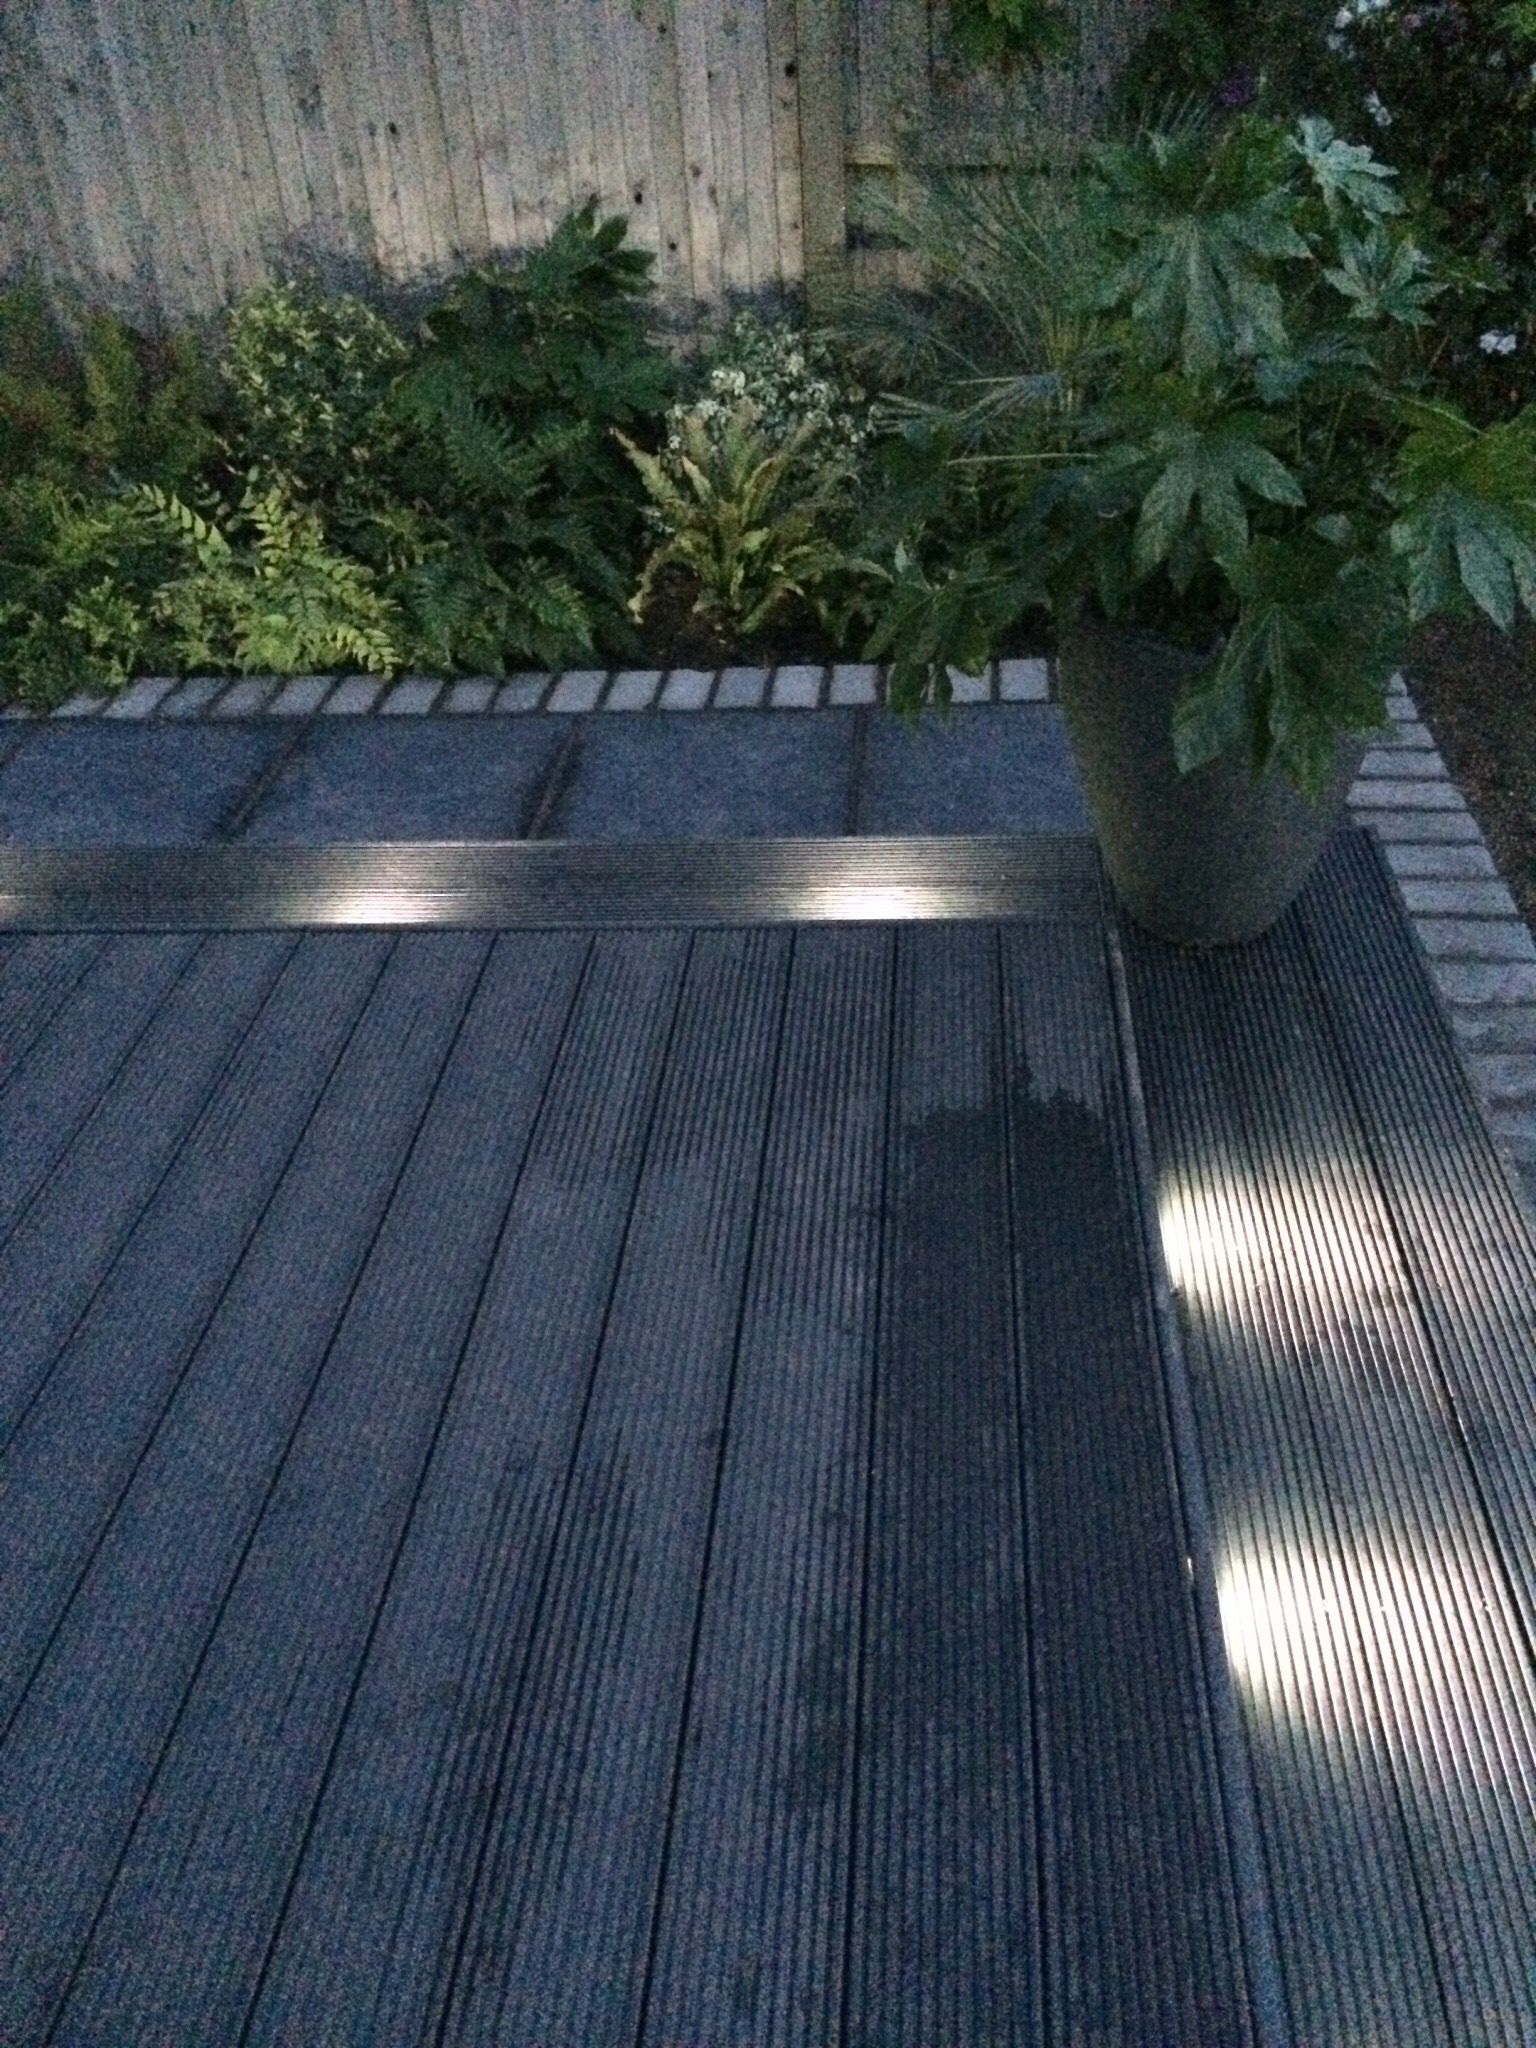 Garden lighting decking composite paving dark grey for Gardens with decking and paving